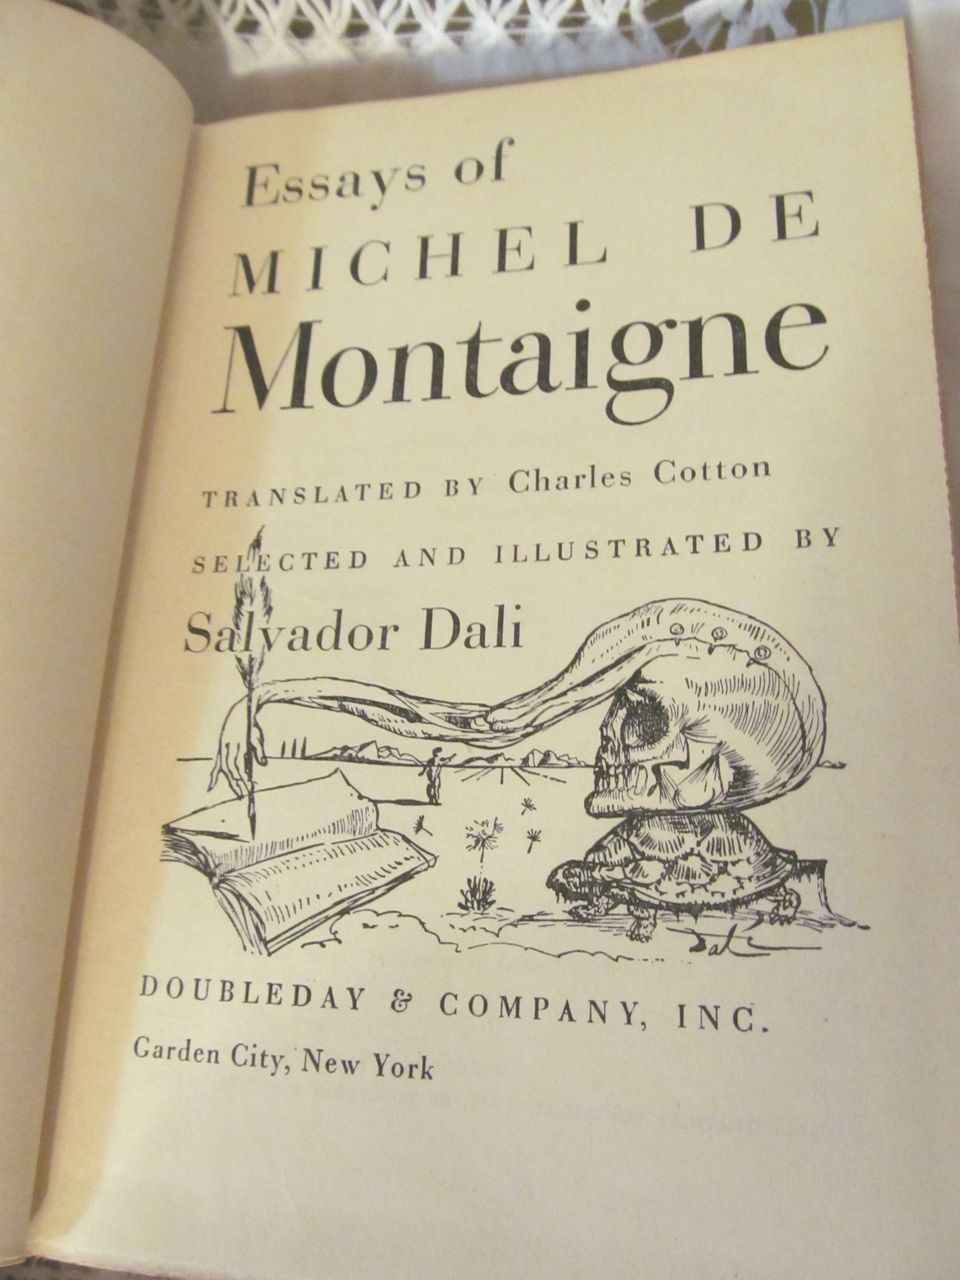 essays of michel de montaigne illustrated by salvador dali  1947 essays of michel de montaigne illustrated by salvador dali translated by charles cotton publ doubleday company inc